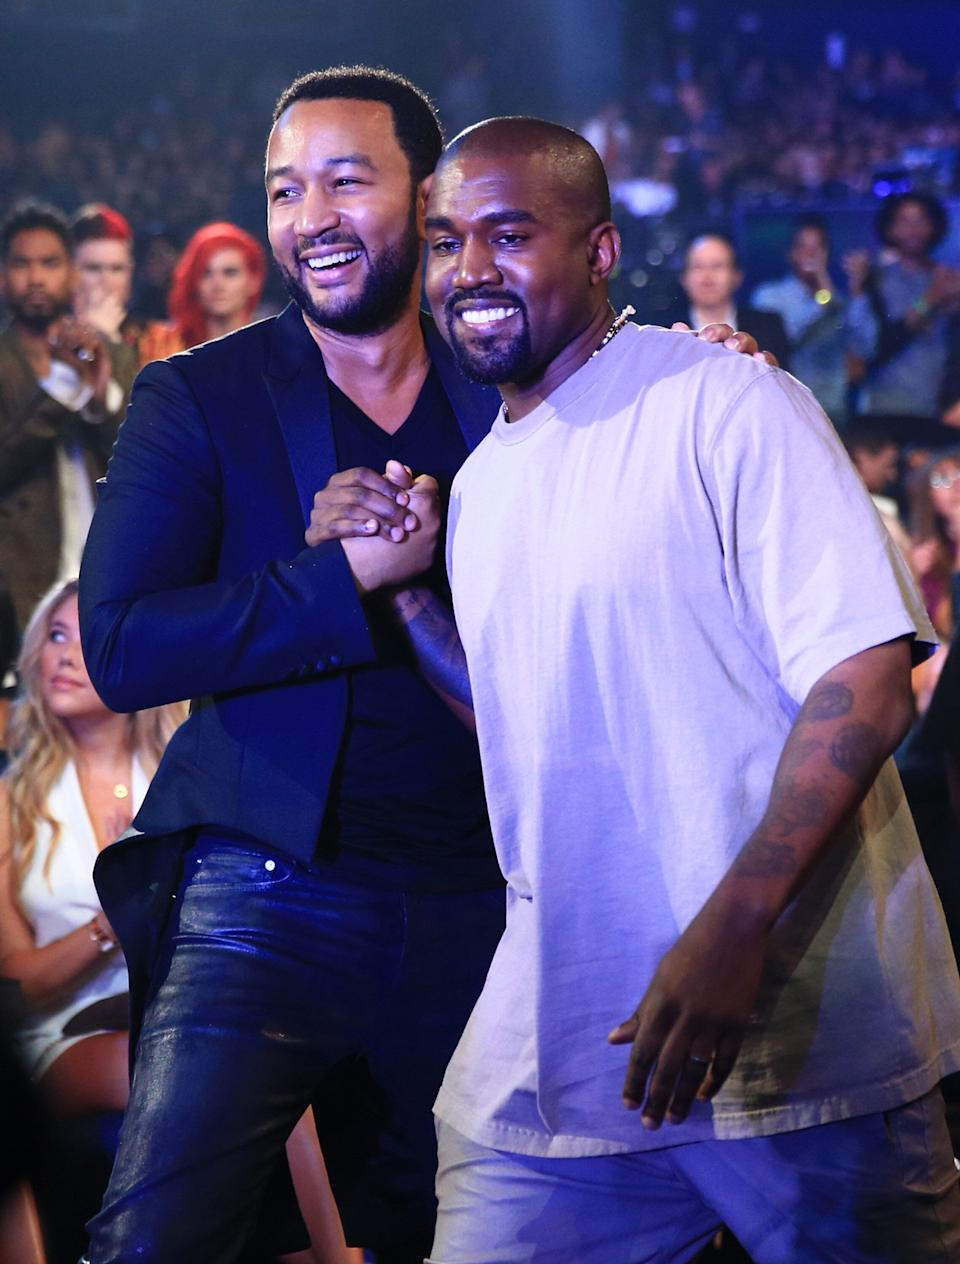 John Legend and Kanye West attend the 2015 MTV Video Music Awards. (Photo: Christopher Polk/MTV1415 via Getty Images)